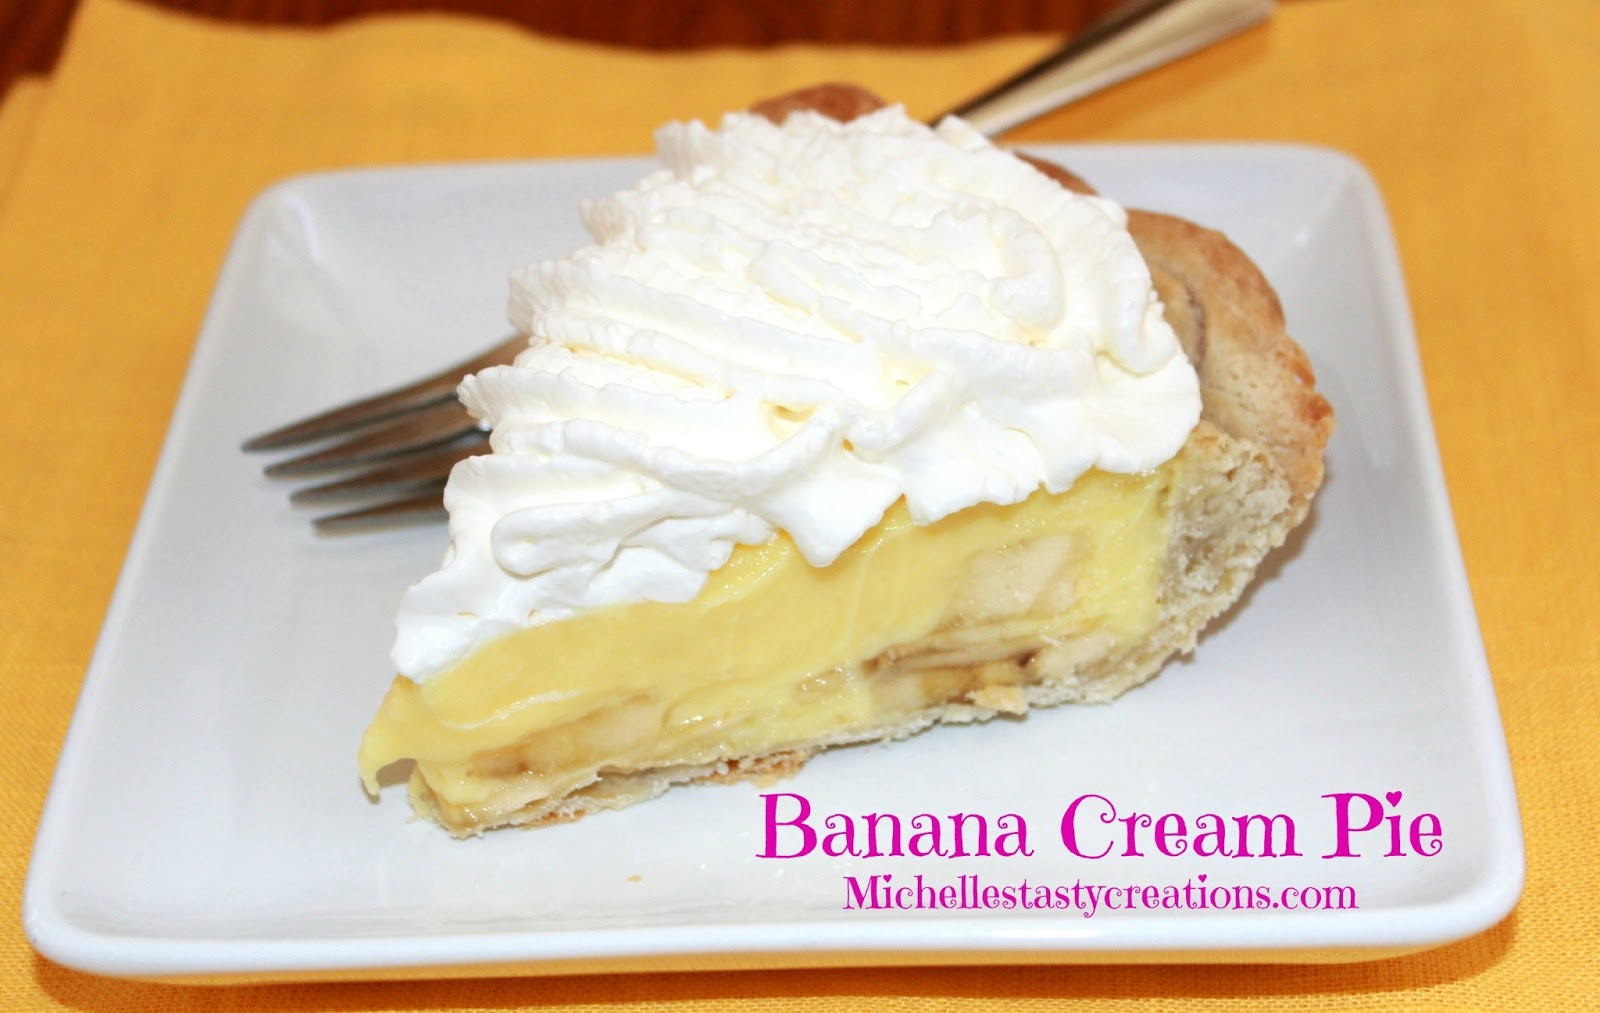 Michelle's Tasty Creations: Banana Cream Pie